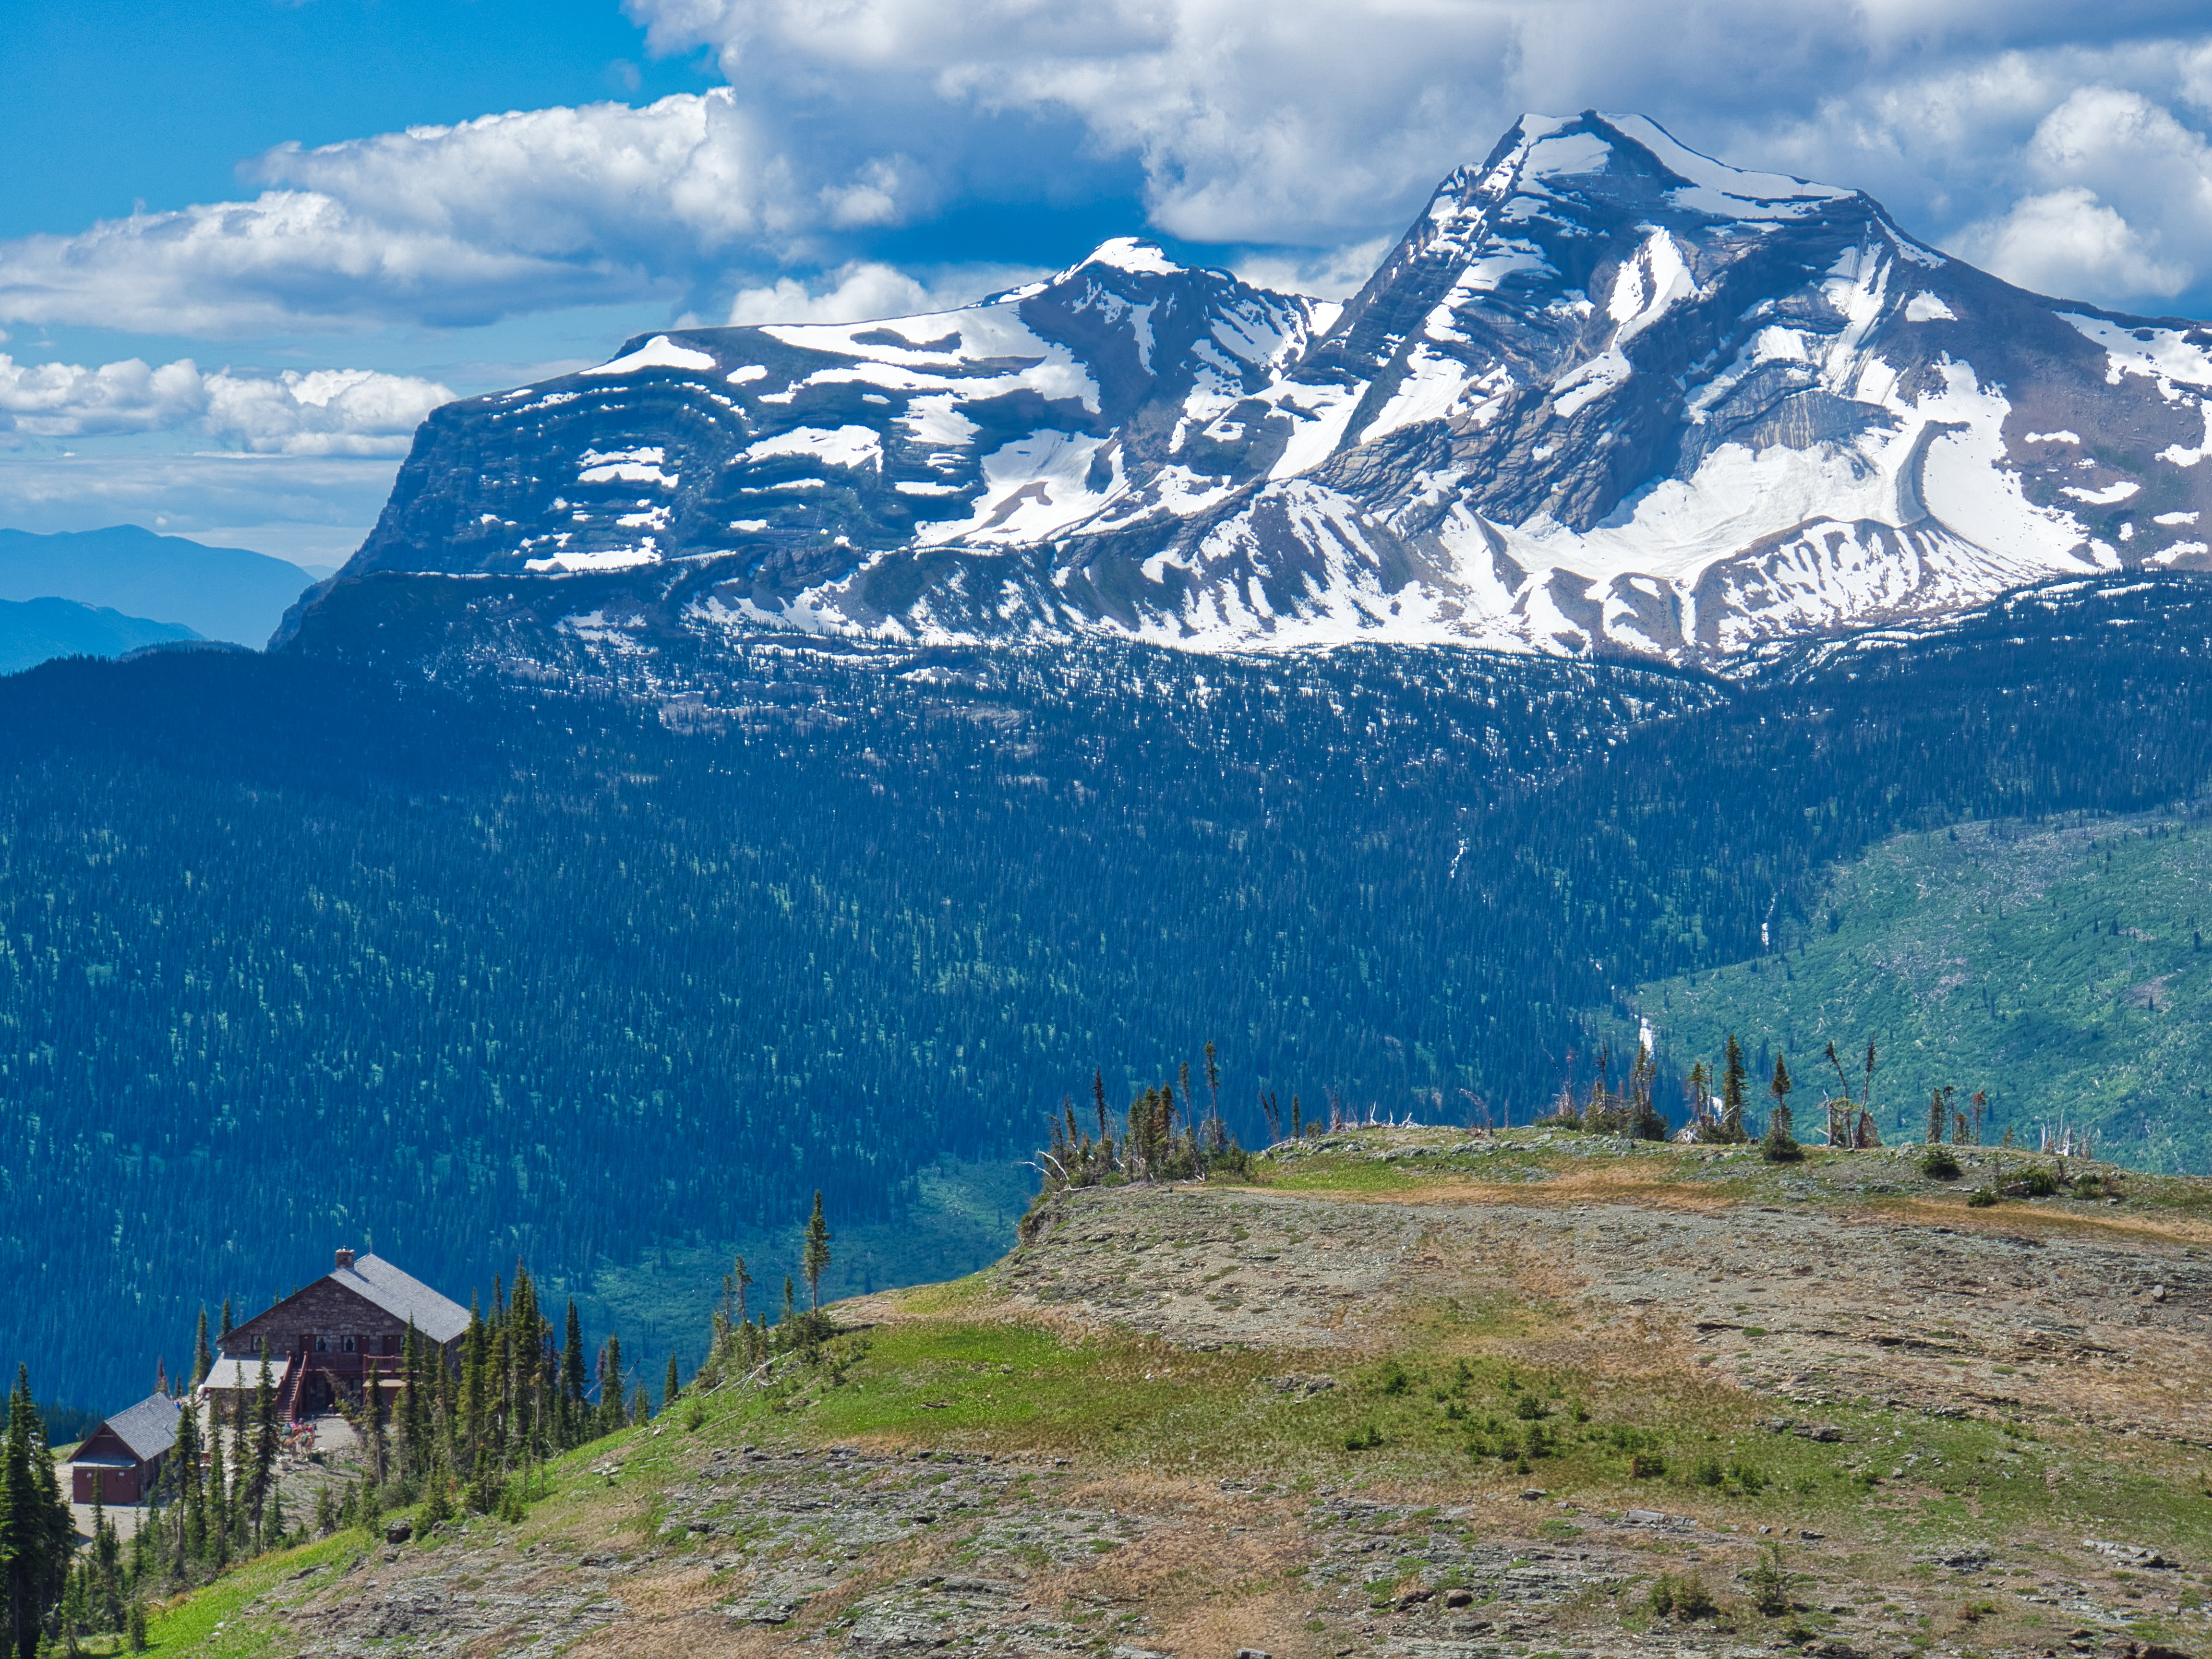 Heavens Peak with Granite Park Chalet from Trail to Swiftcurrent Pass, Glacier National Park